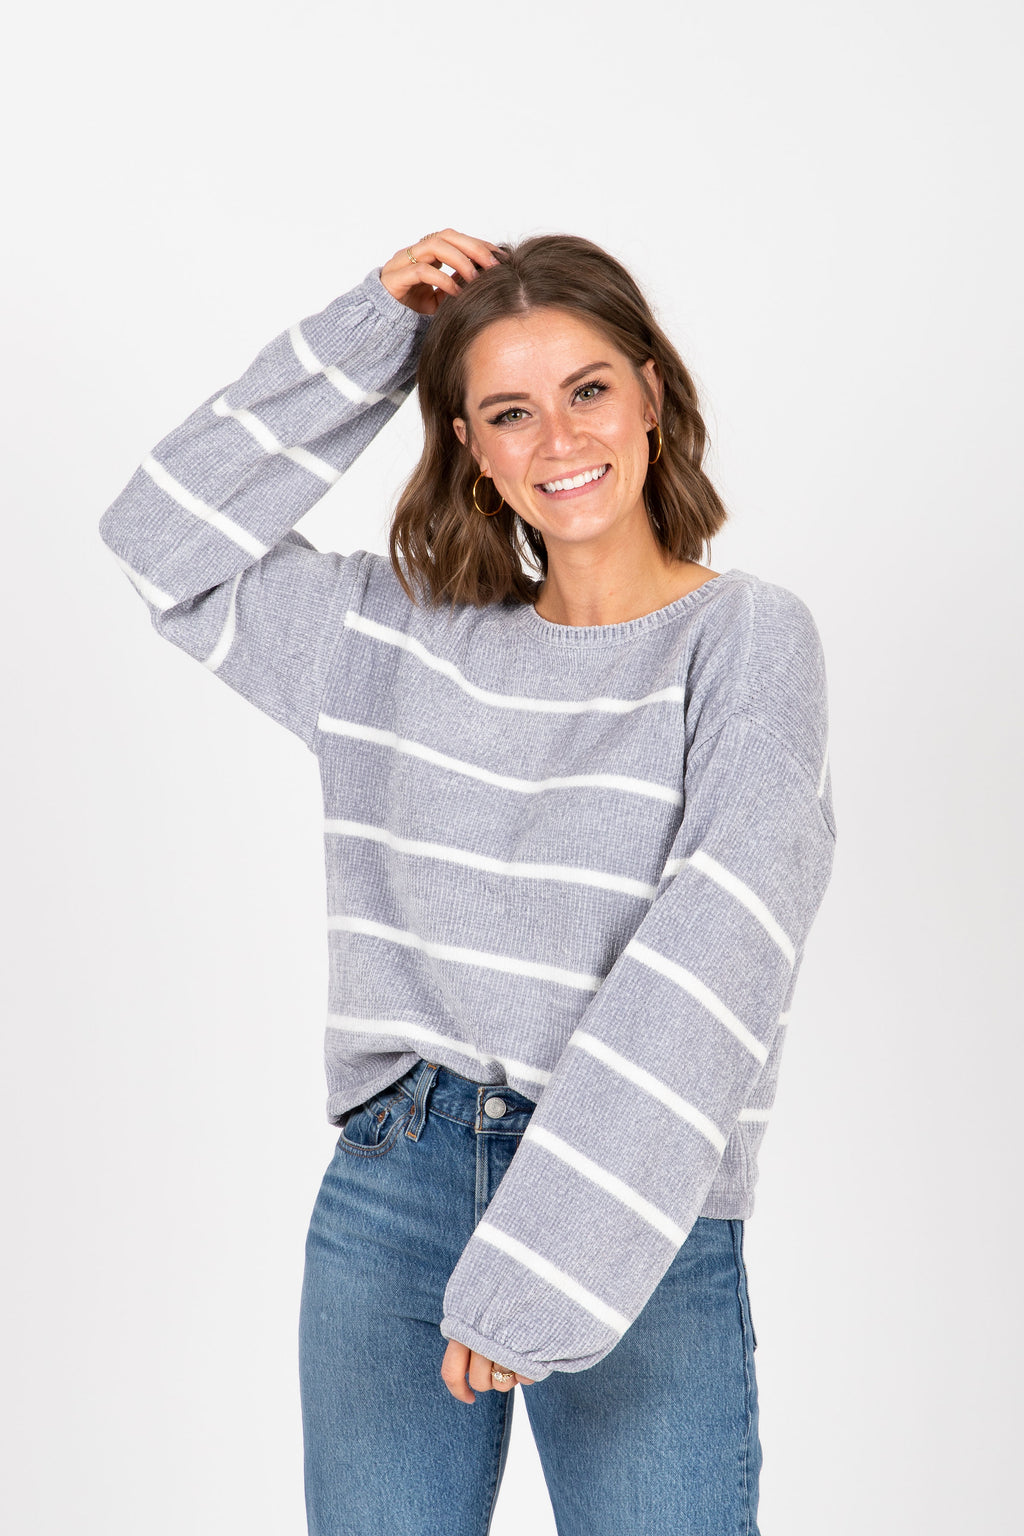 The Edge Cozy Striped Sweater in Grey, studio shoot; front view